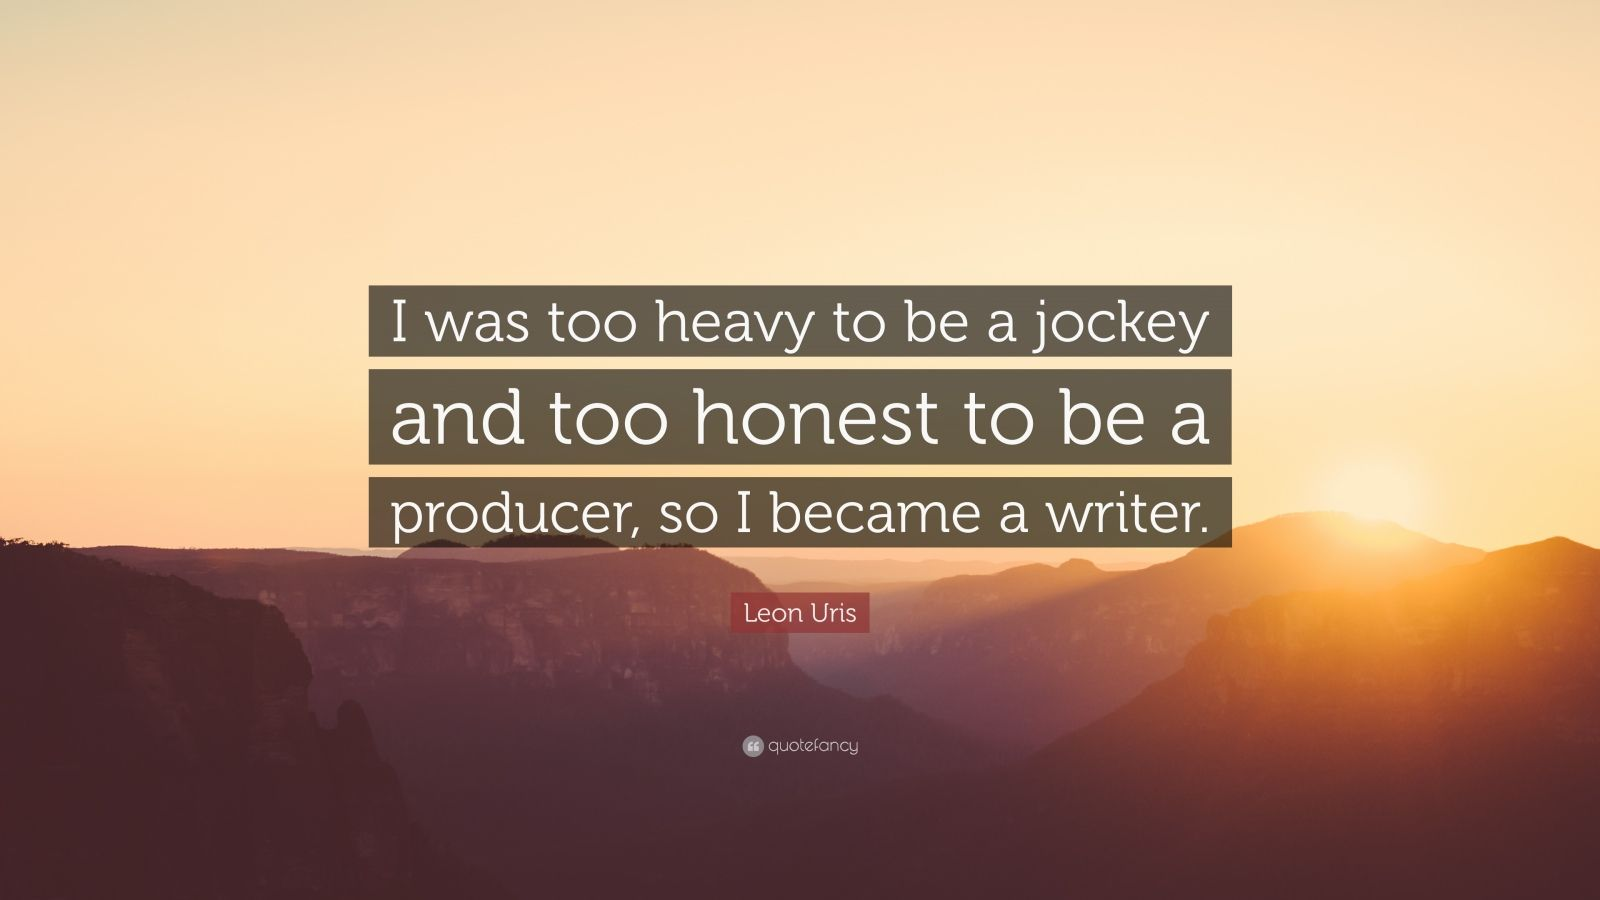 """Leon Uris Quote: """"I was too heavy to be a jockey and too honest to be a producer, so I became a writer."""""""